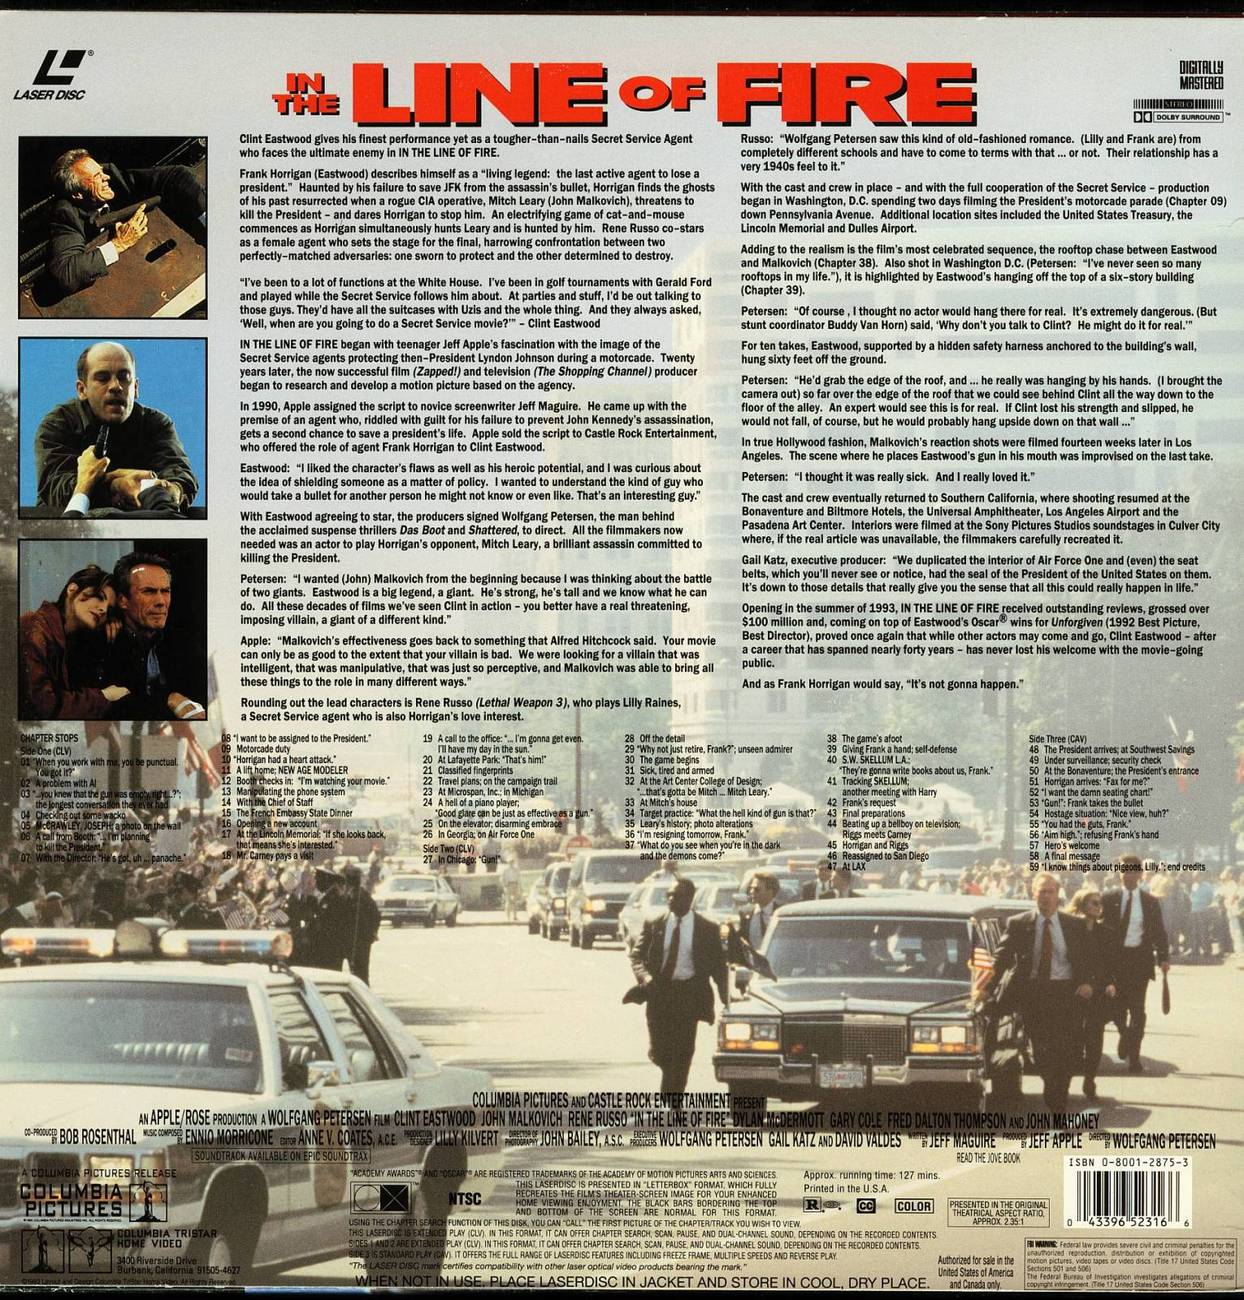 IN THE LINE OF FIRE RENE RUSSO LASERDISC RARE